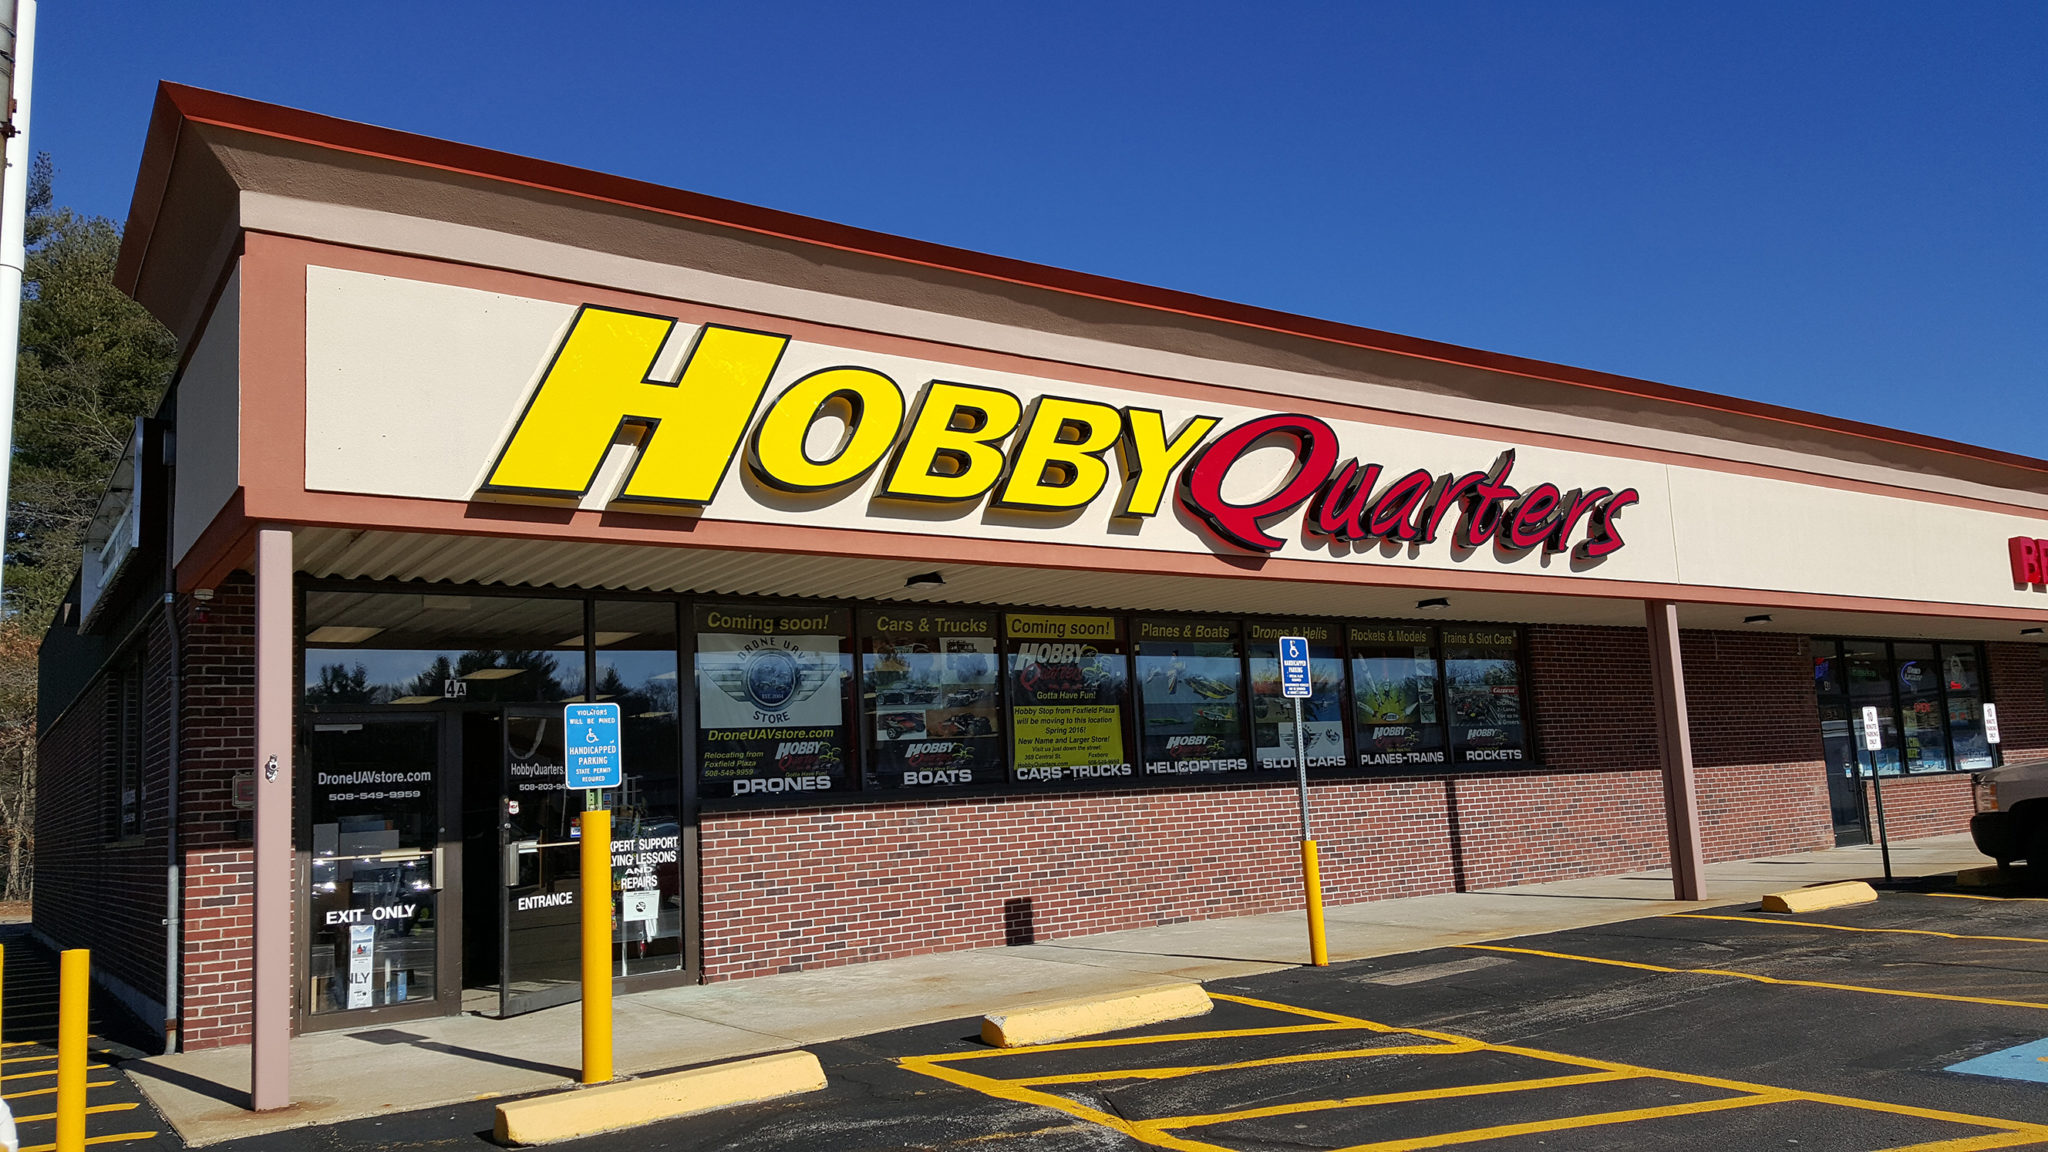 Hobby Quarters Channel Letters in the Day